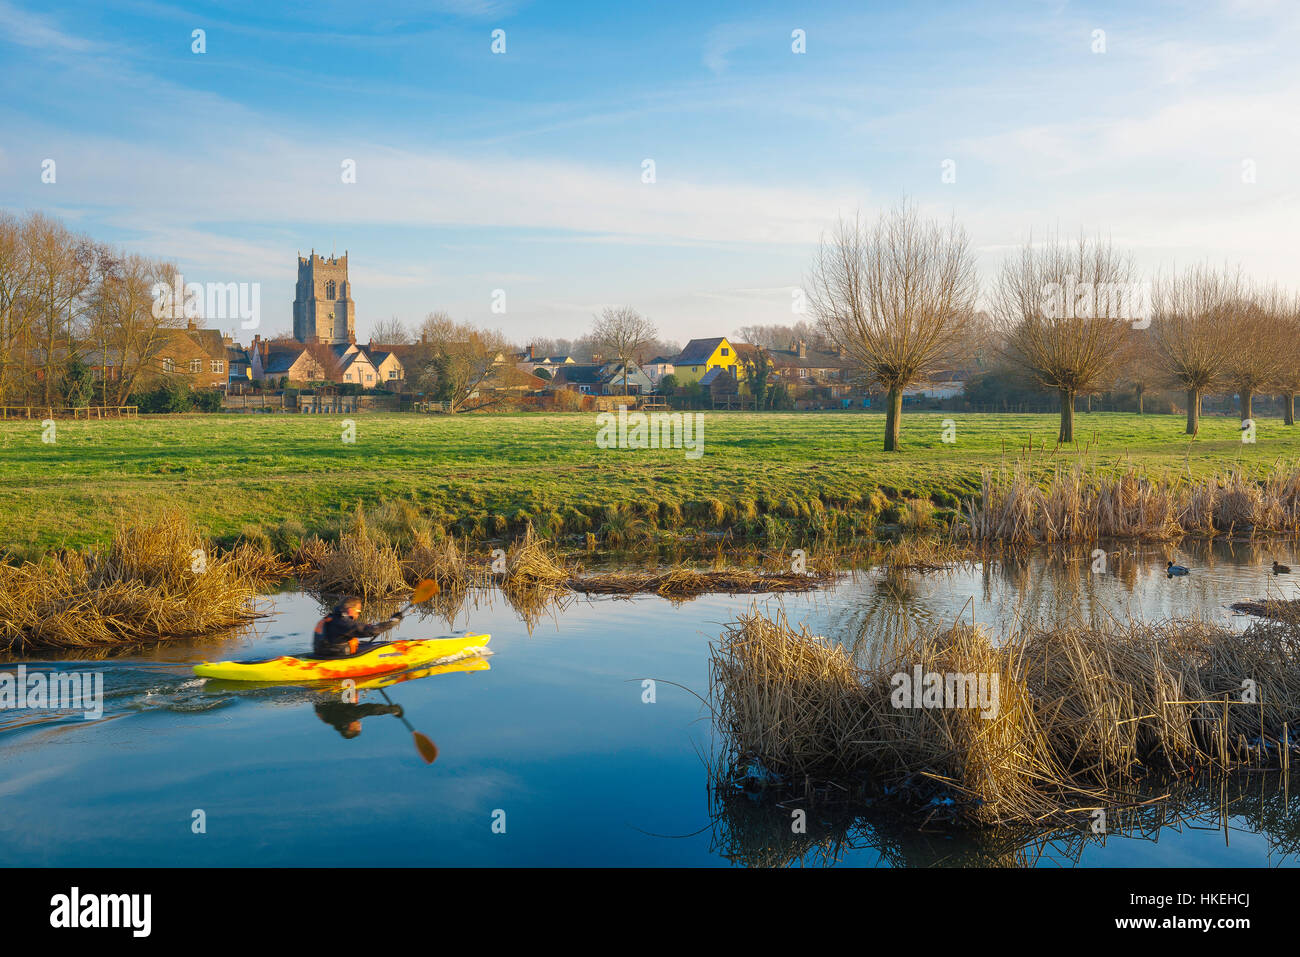 A man paddles his yellow canoe on the River Stour in winter with the Suffolk town of Sudbury in the background, - Stock Image